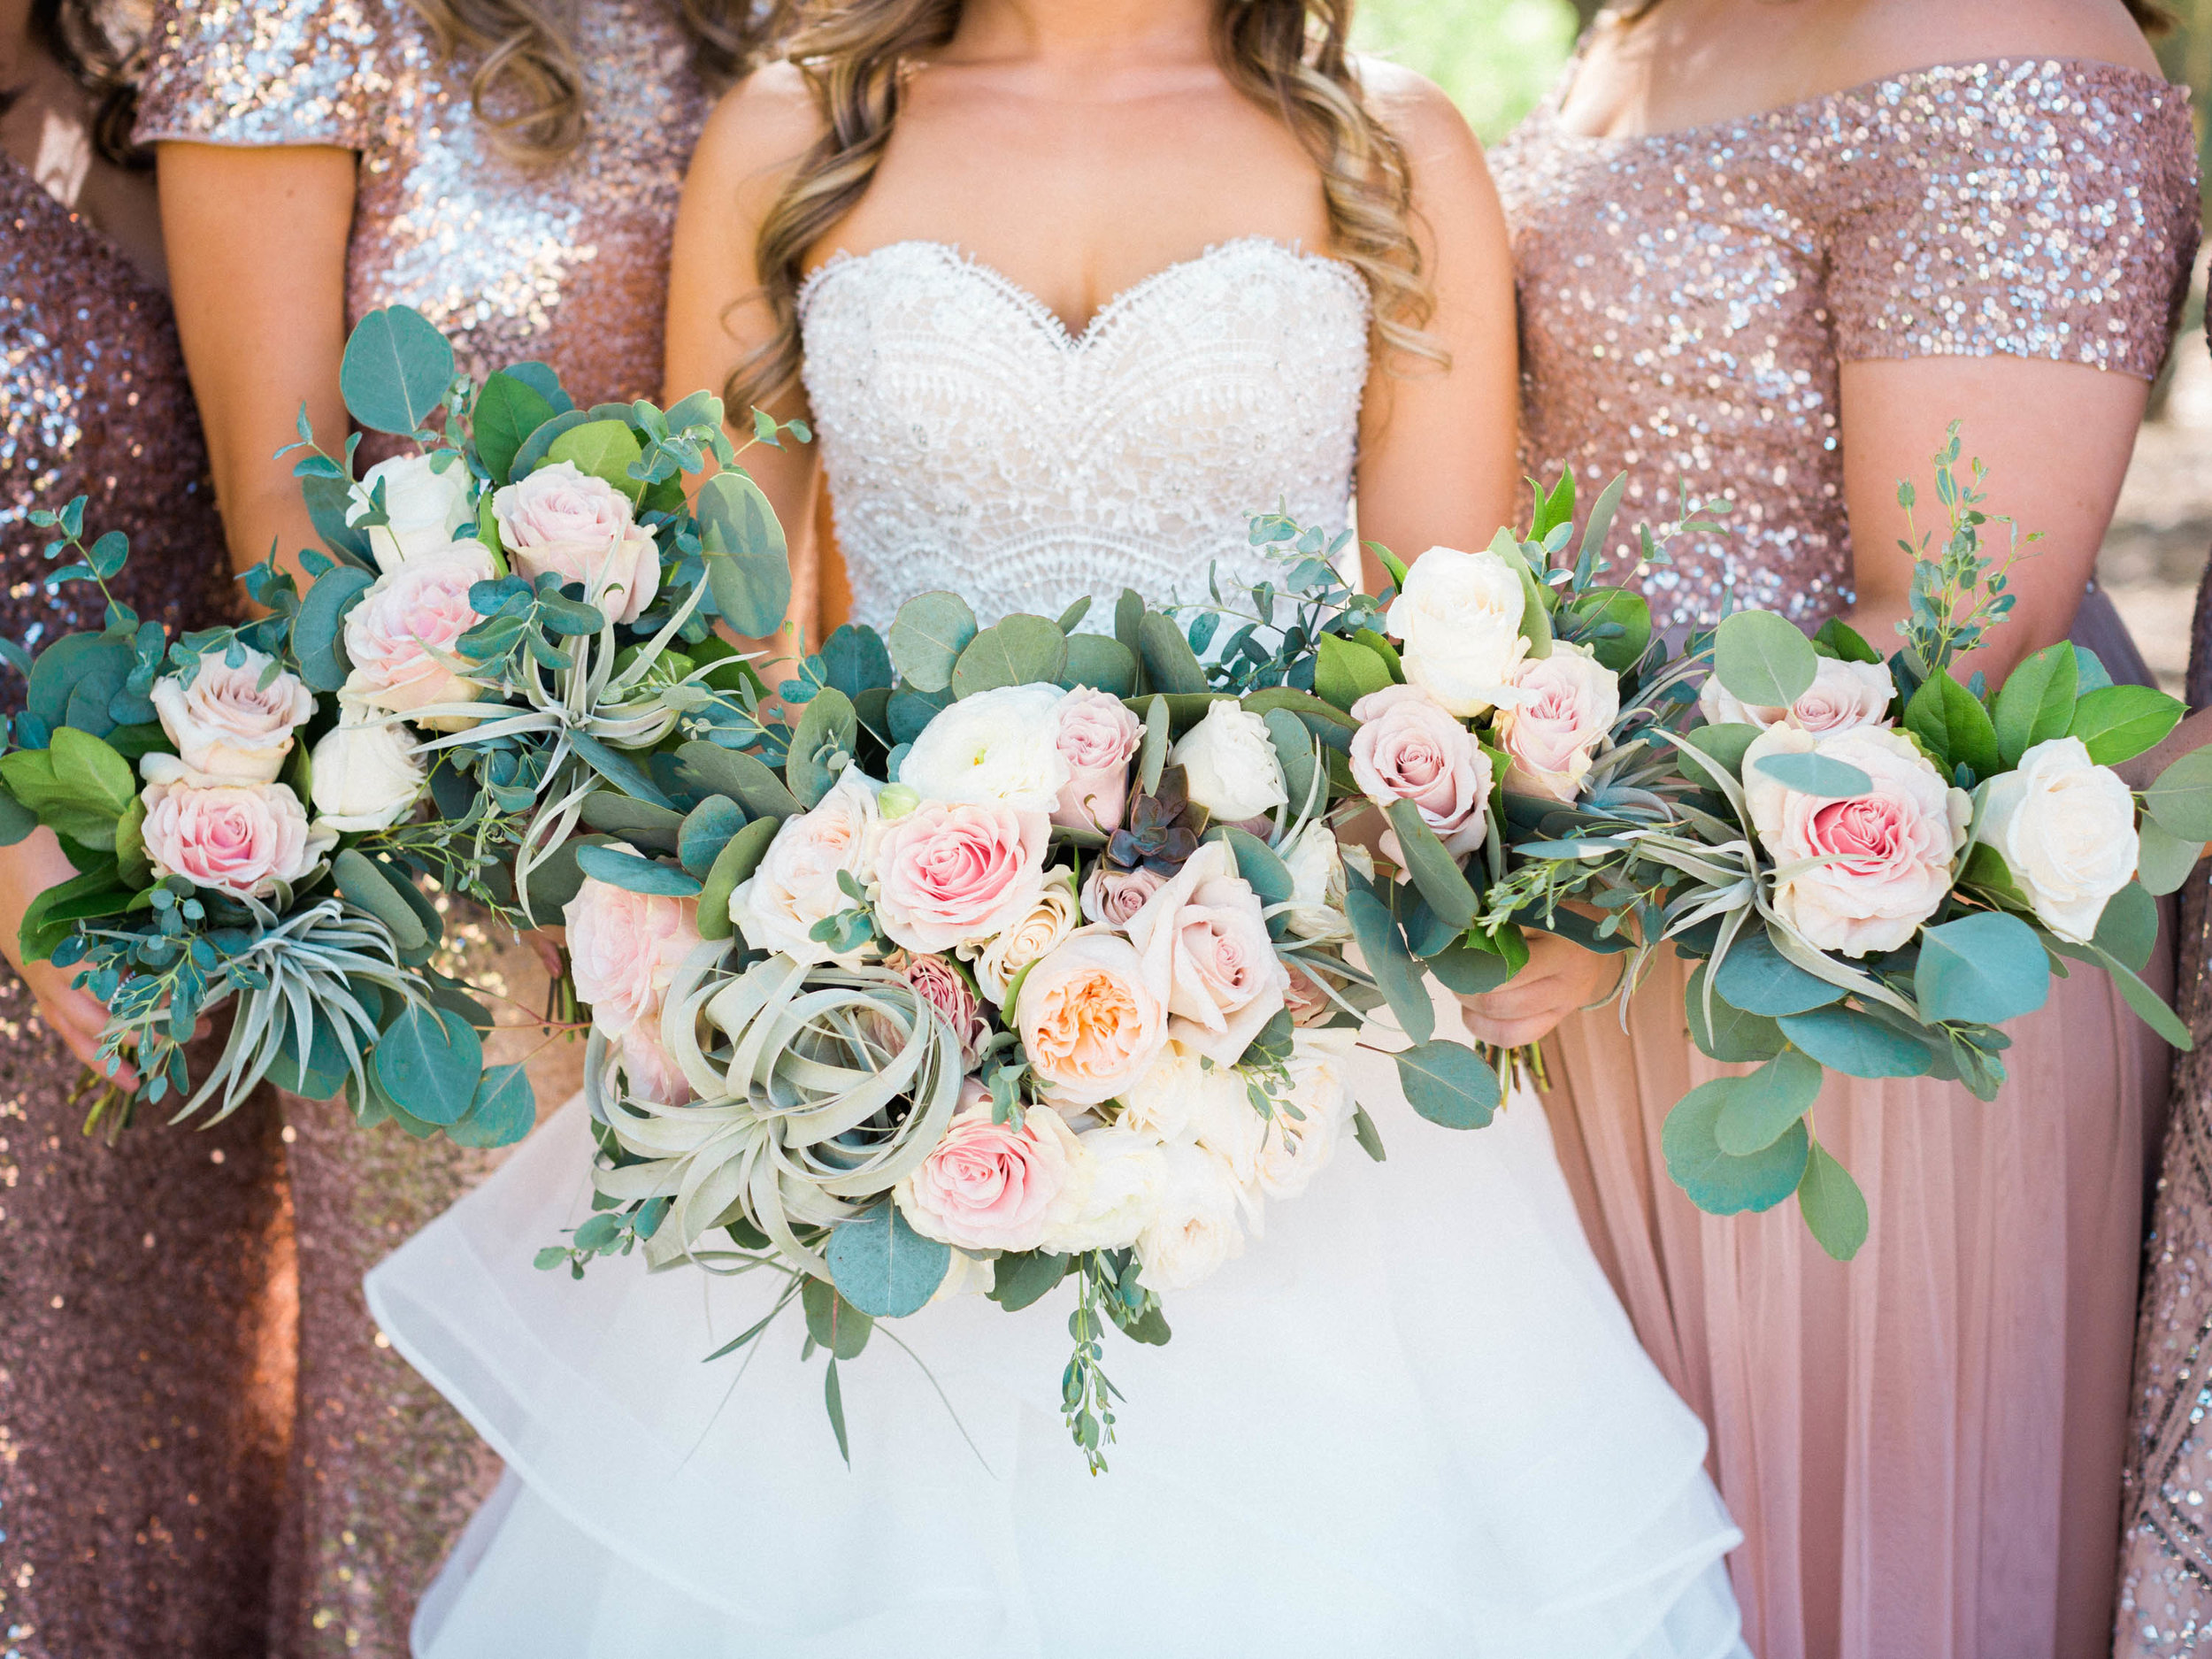 Stunning florals by Alexis Grace Florals captured by Tucson Wedding Photographers Betsy & John